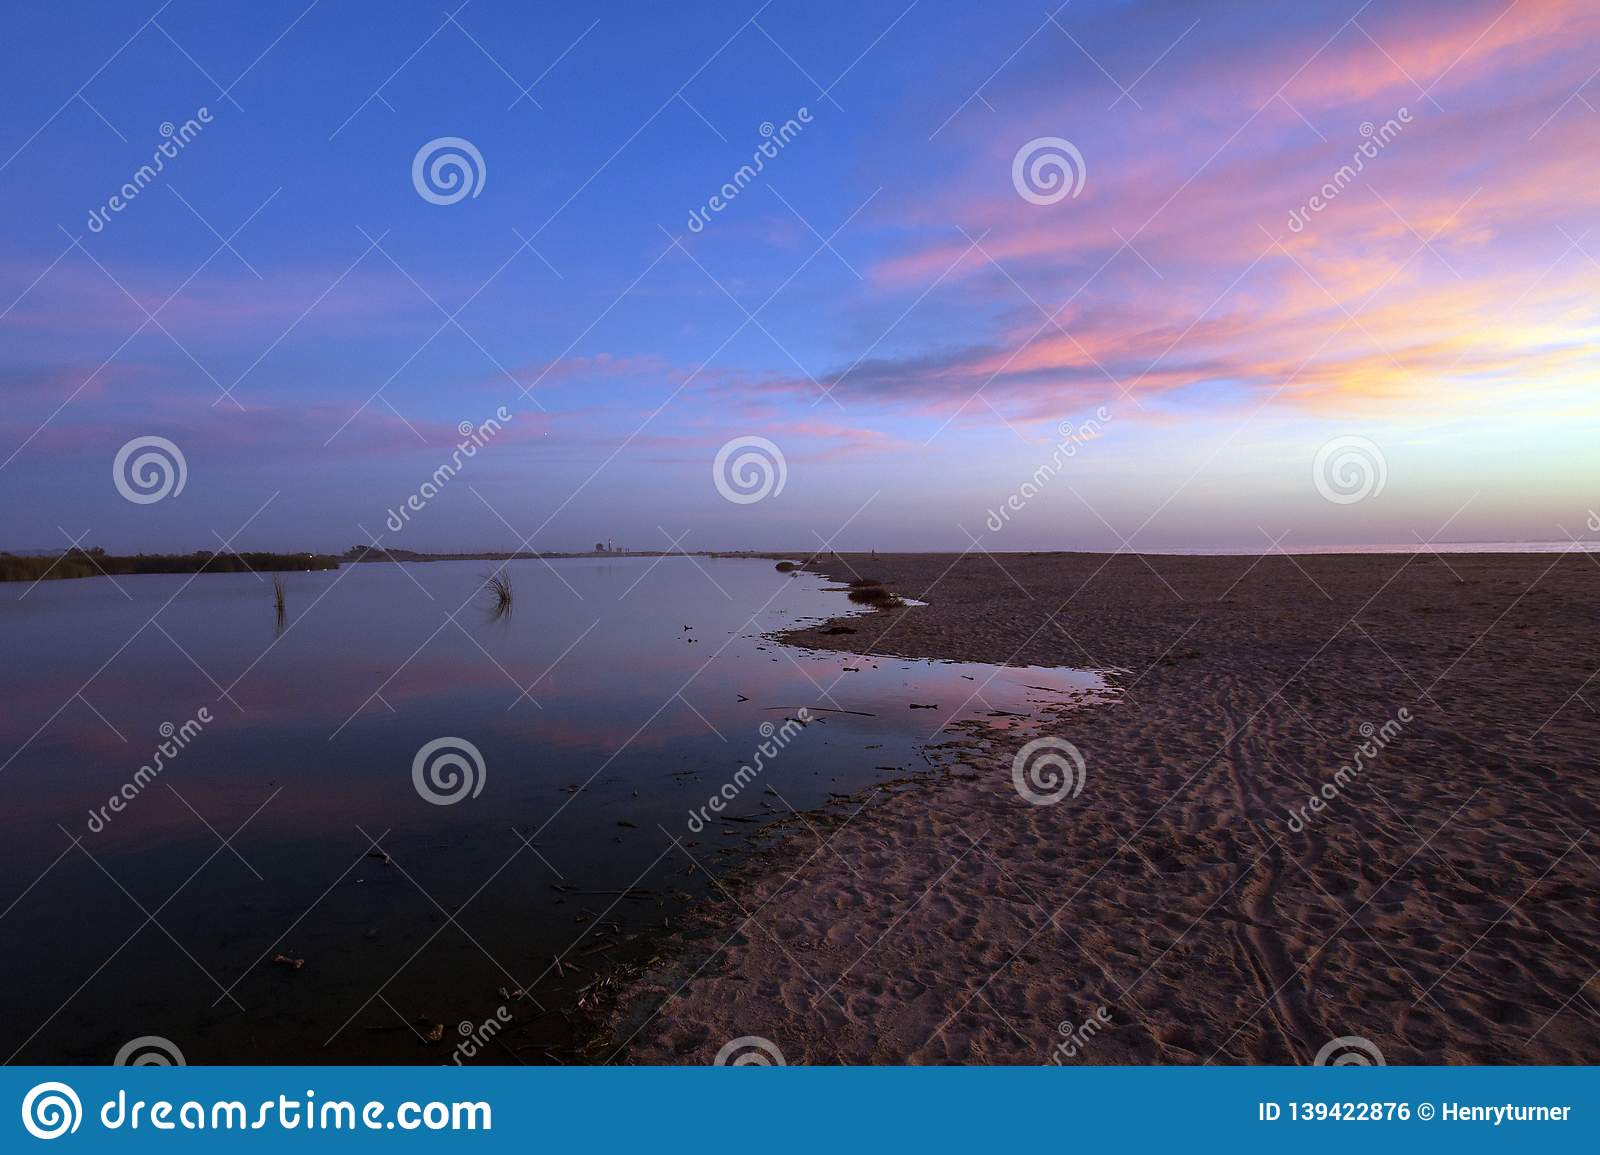 Pink sunset cloud reflection over Santa Clara river seaside marsh at Ventura beach in California USA